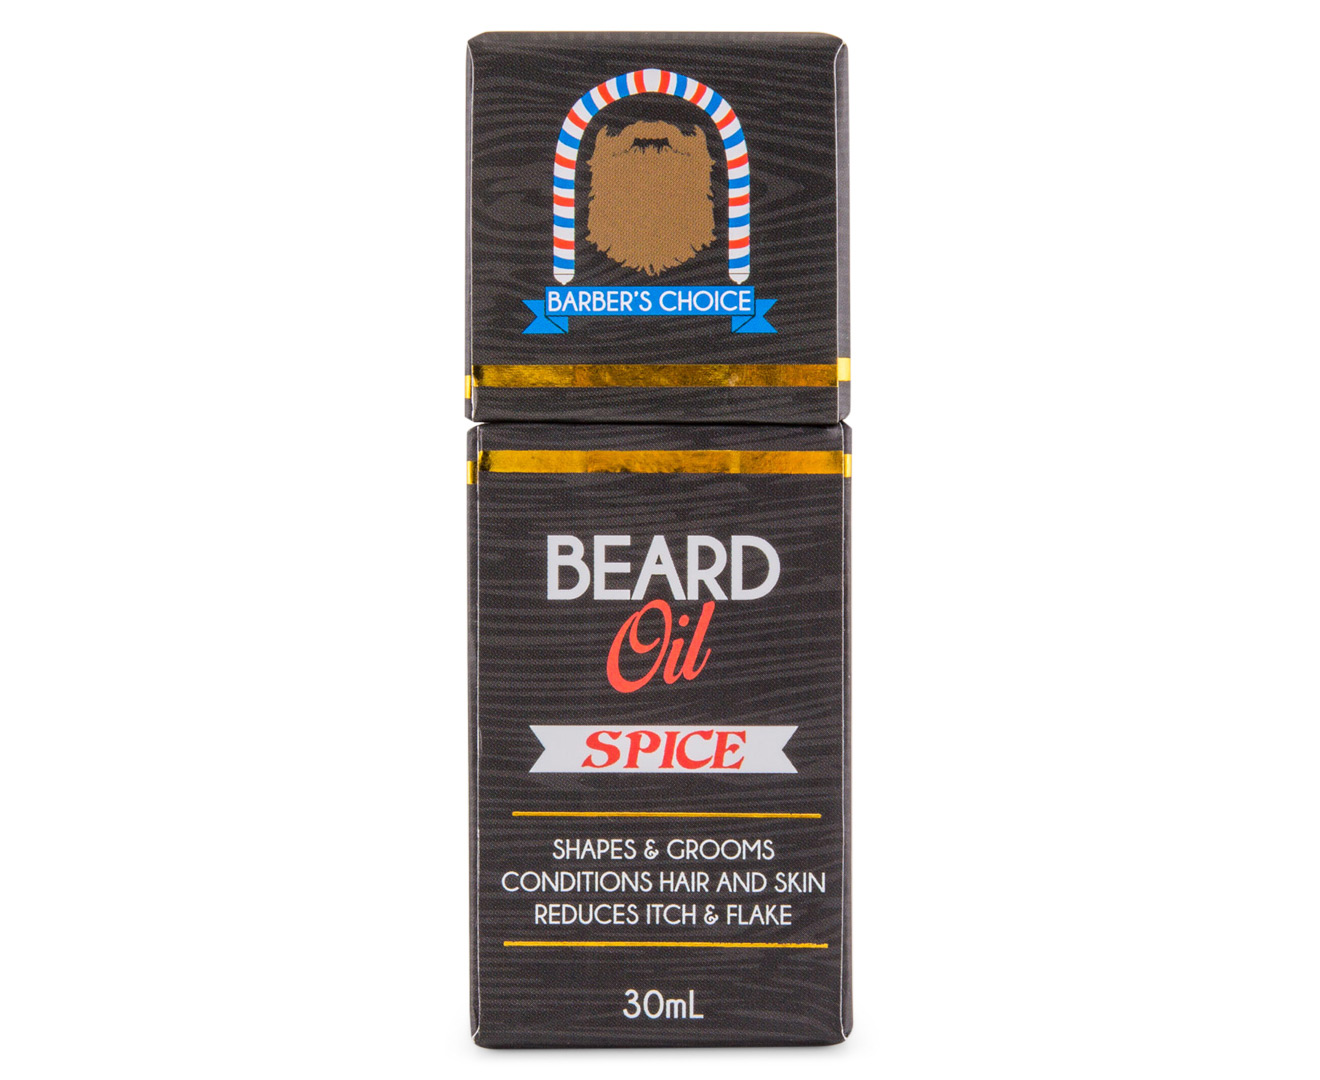 scoopon shopping barber 39 s choice beard oil spice 30ml. Black Bedroom Furniture Sets. Home Design Ideas